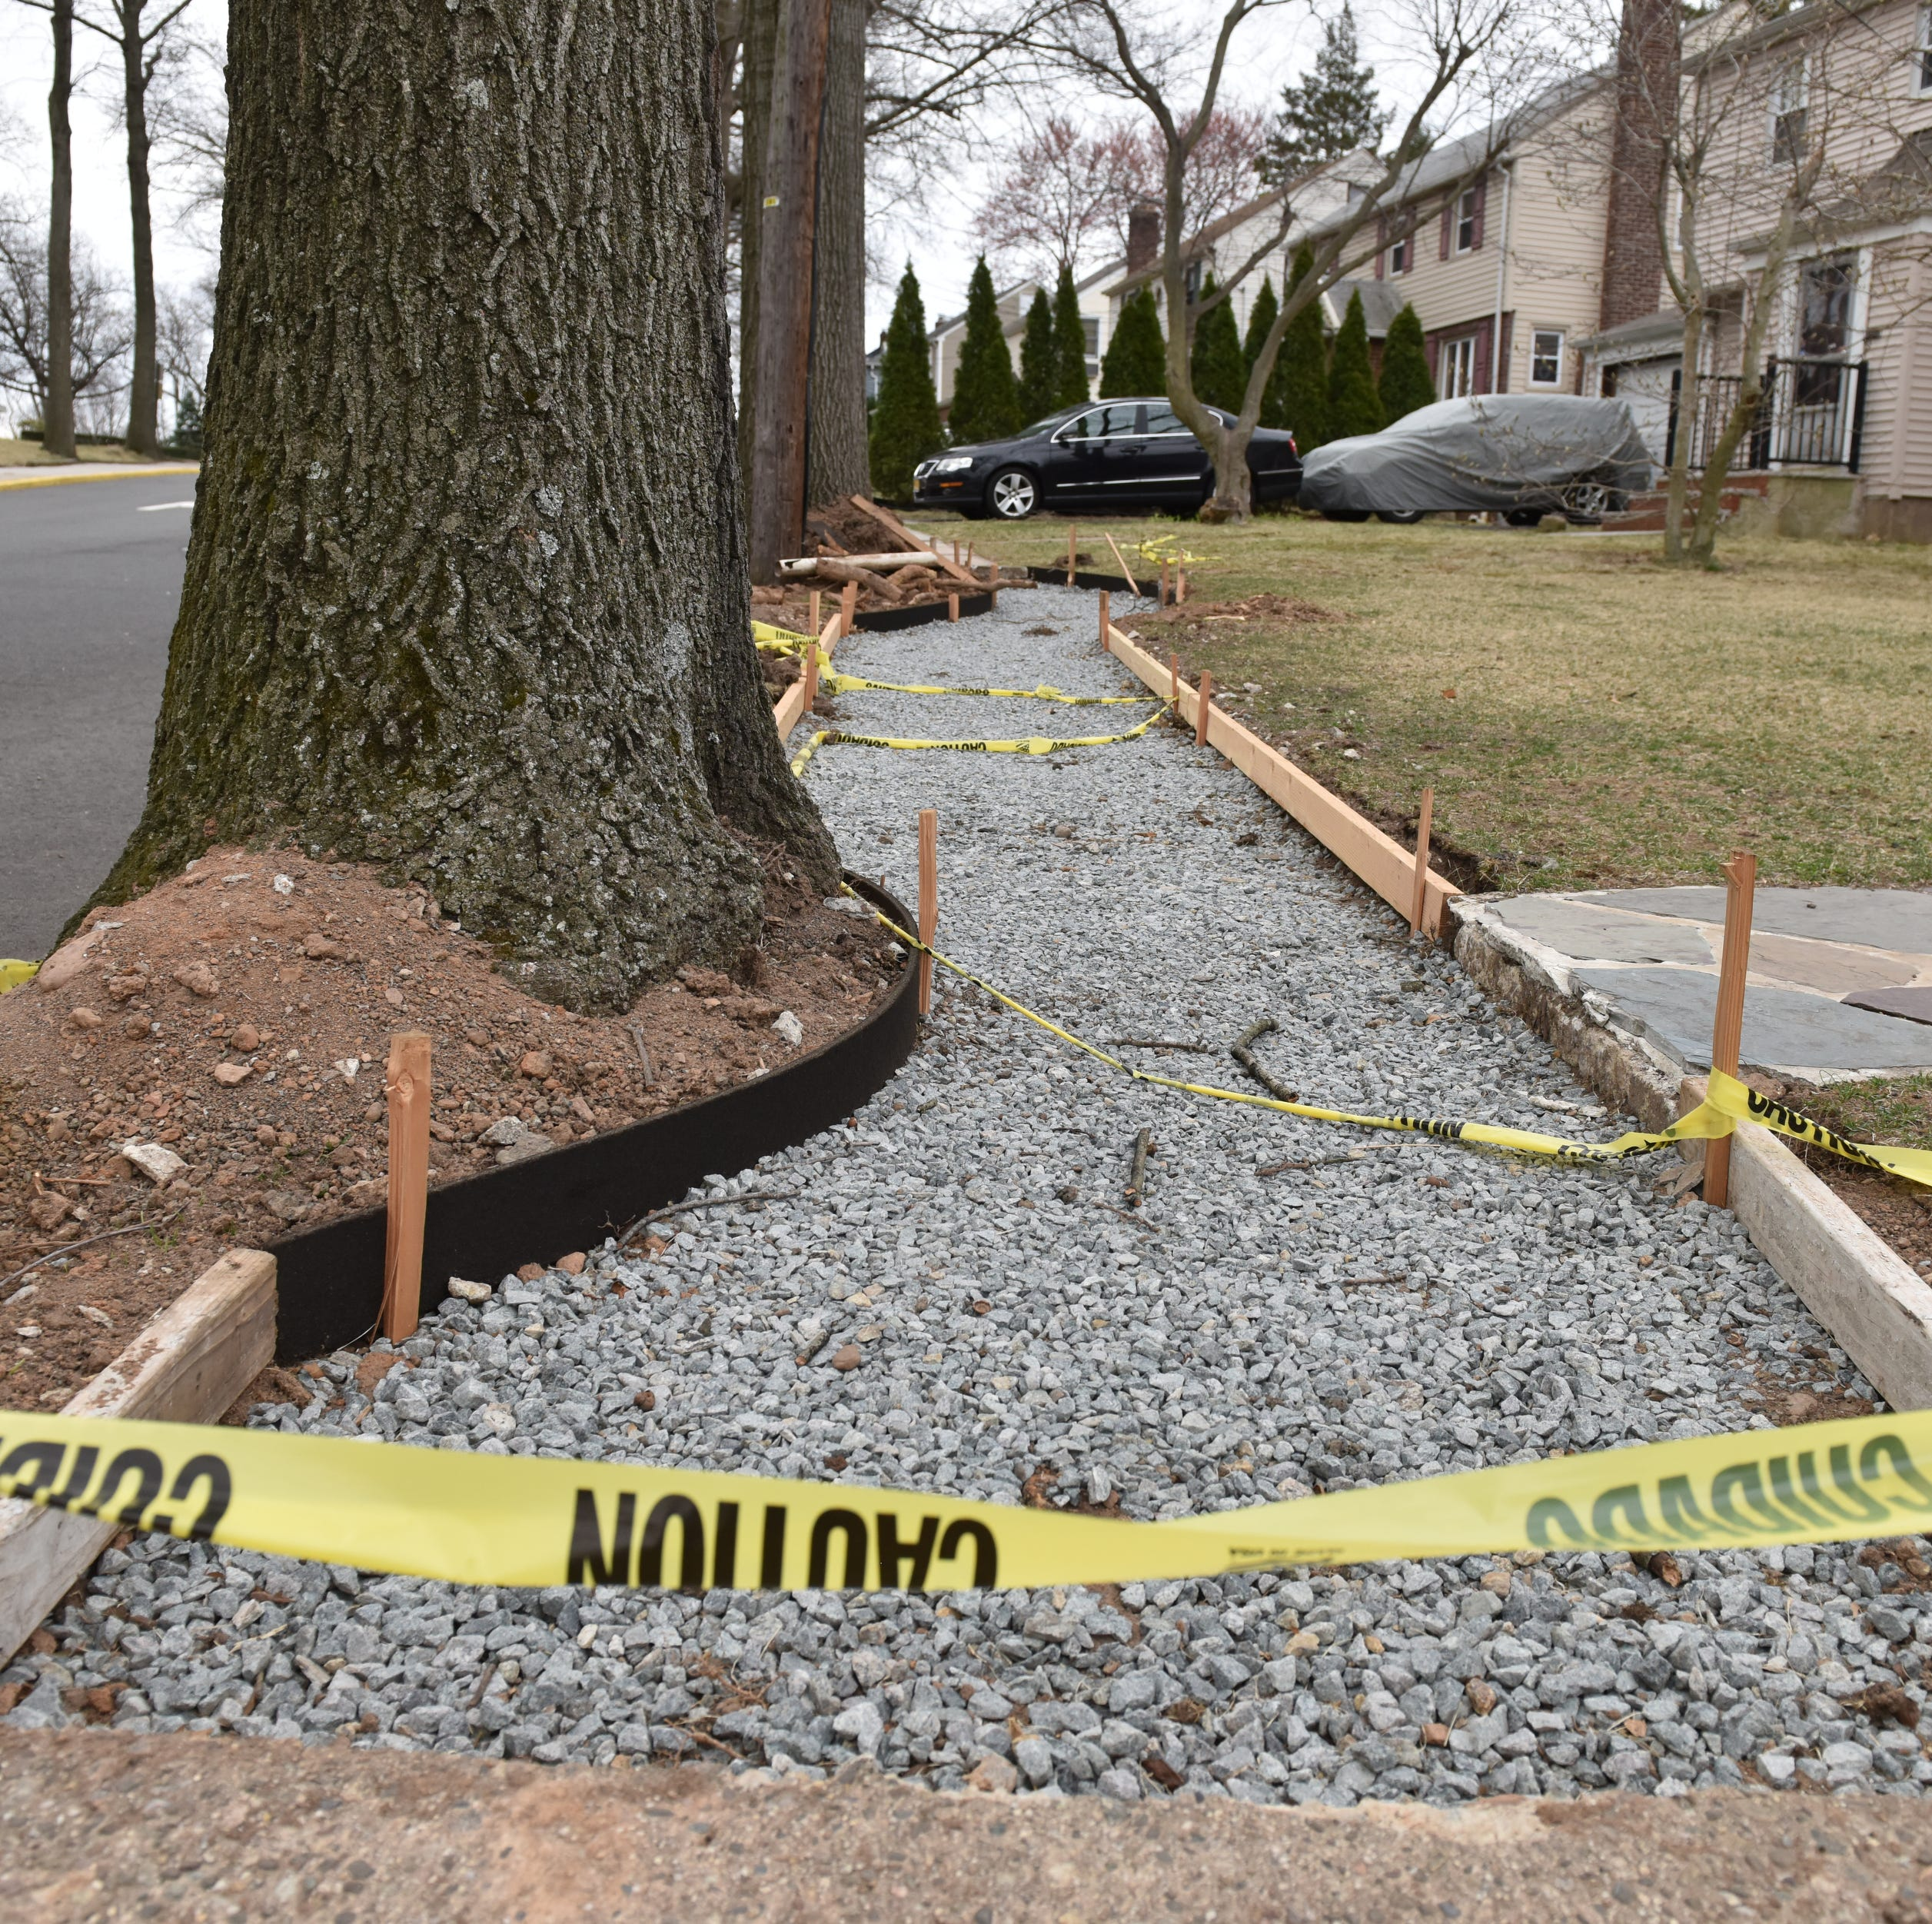 One man's complaints about Teaneck sidewalks cost homeowners thousands of dollars